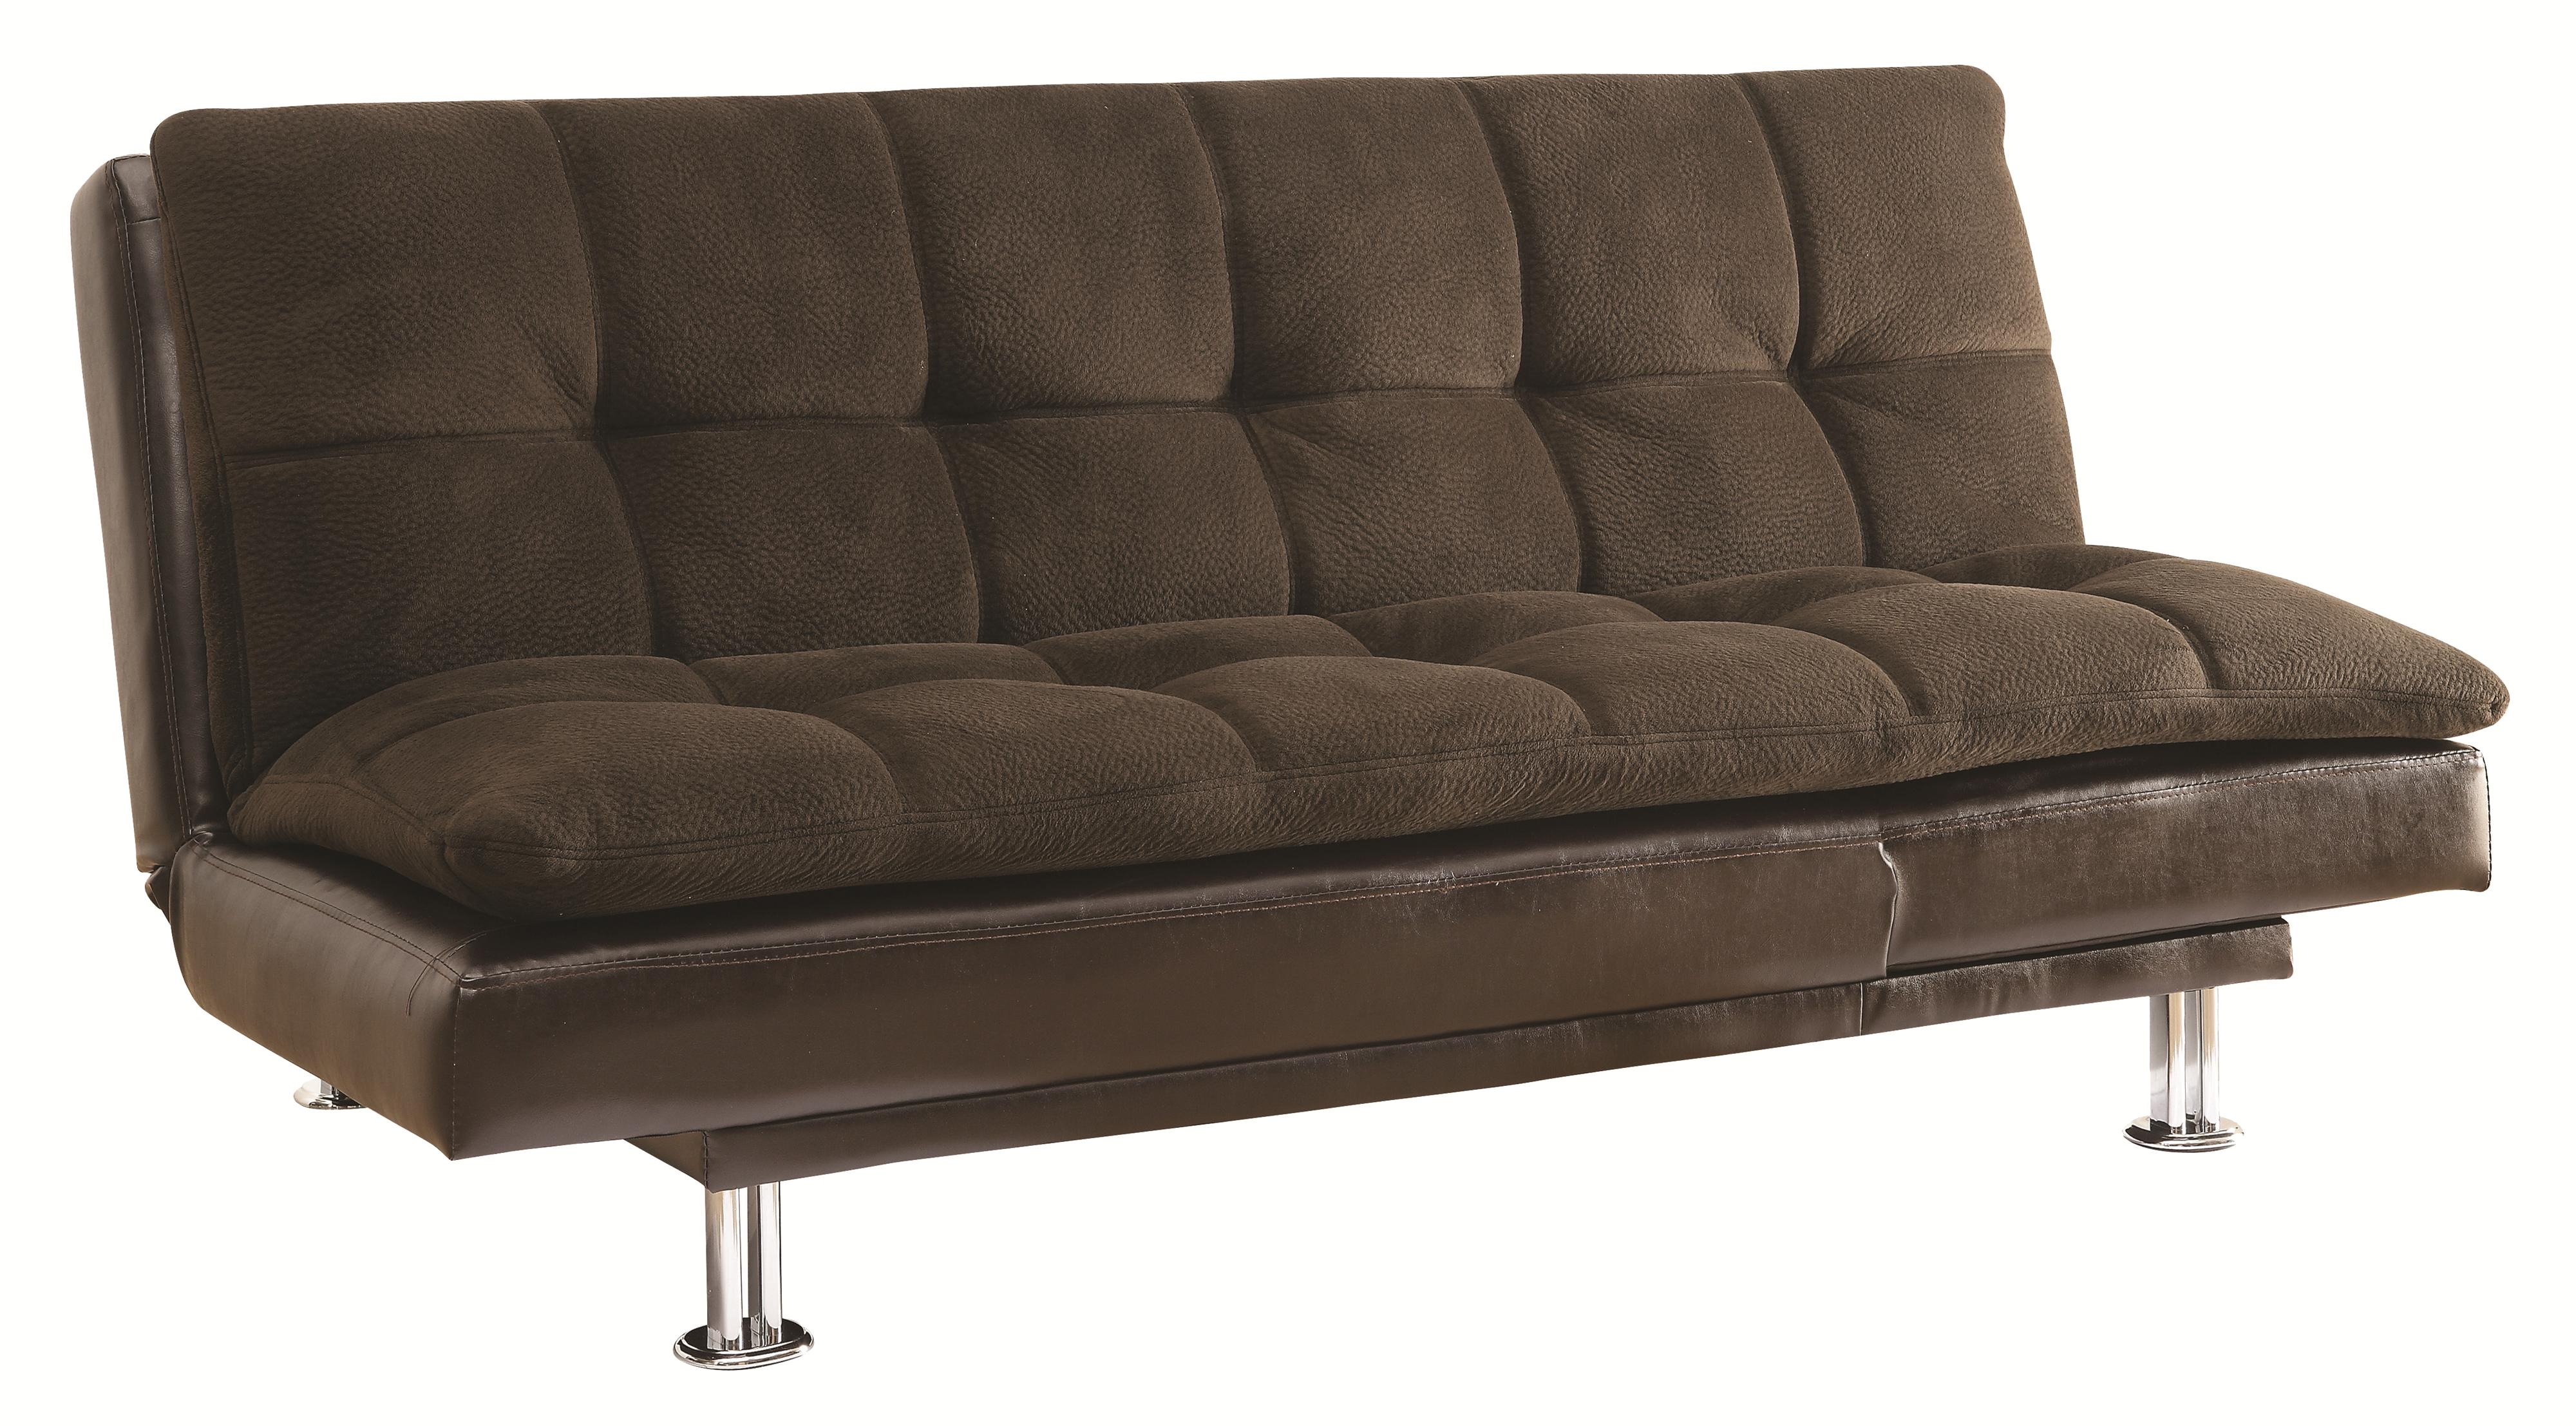 Coaster Sofa Beds and Futons 300313 Millie Sofa Bed with Chrome Legs and Casual Style  Del Sol